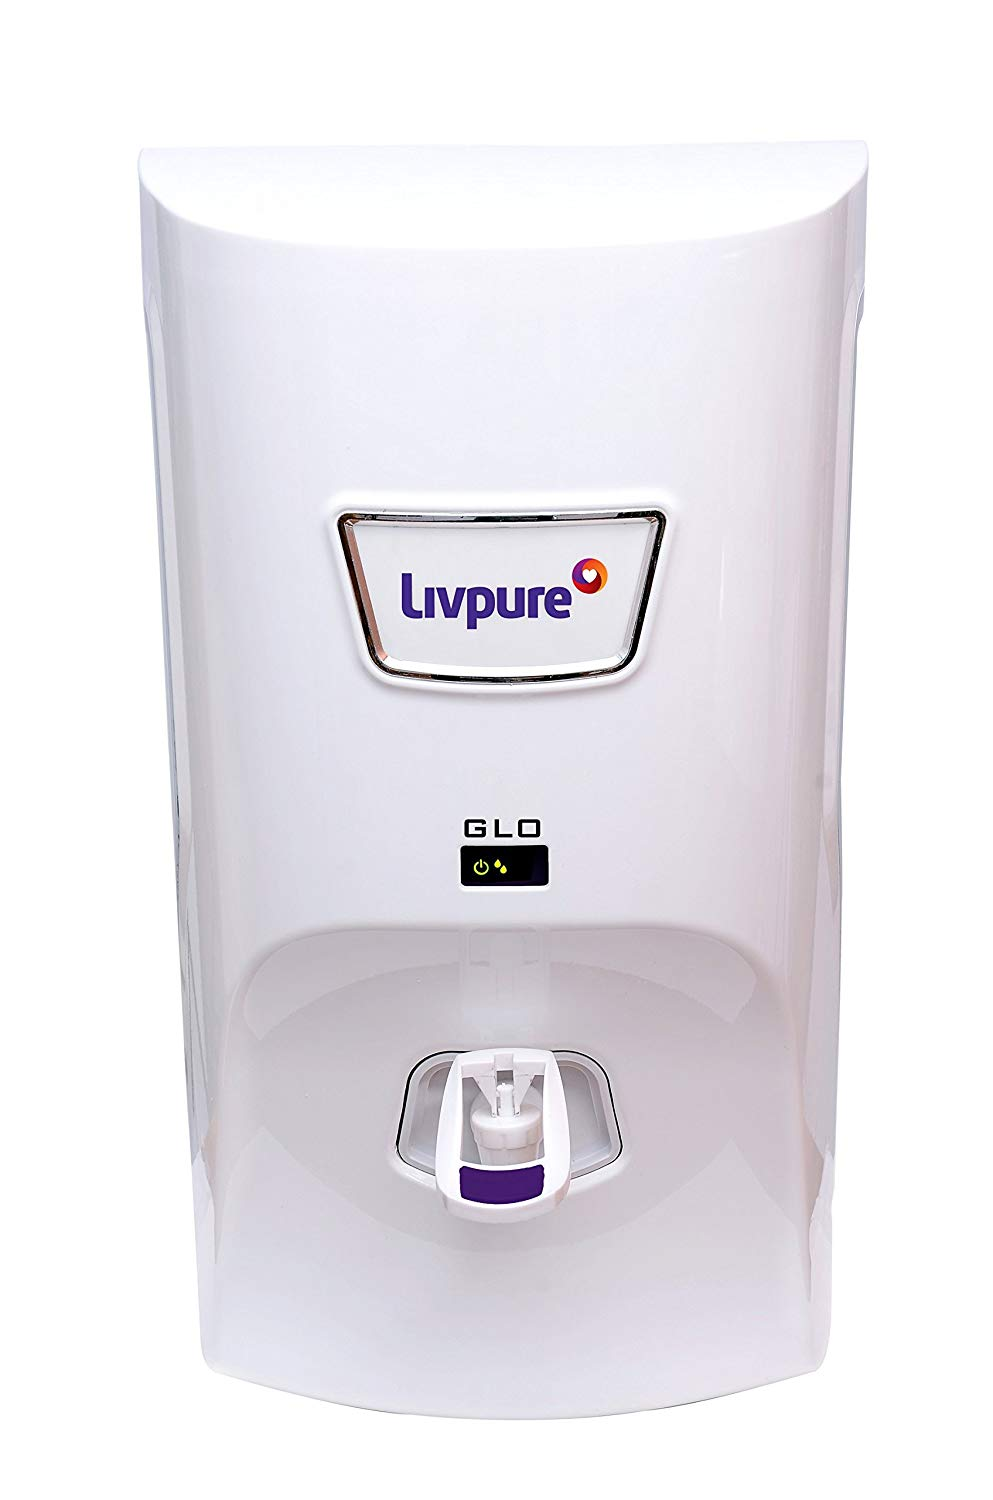 Livpure Glo 7 Litre RO+UV + Mineralizer Water Purifier Photo1